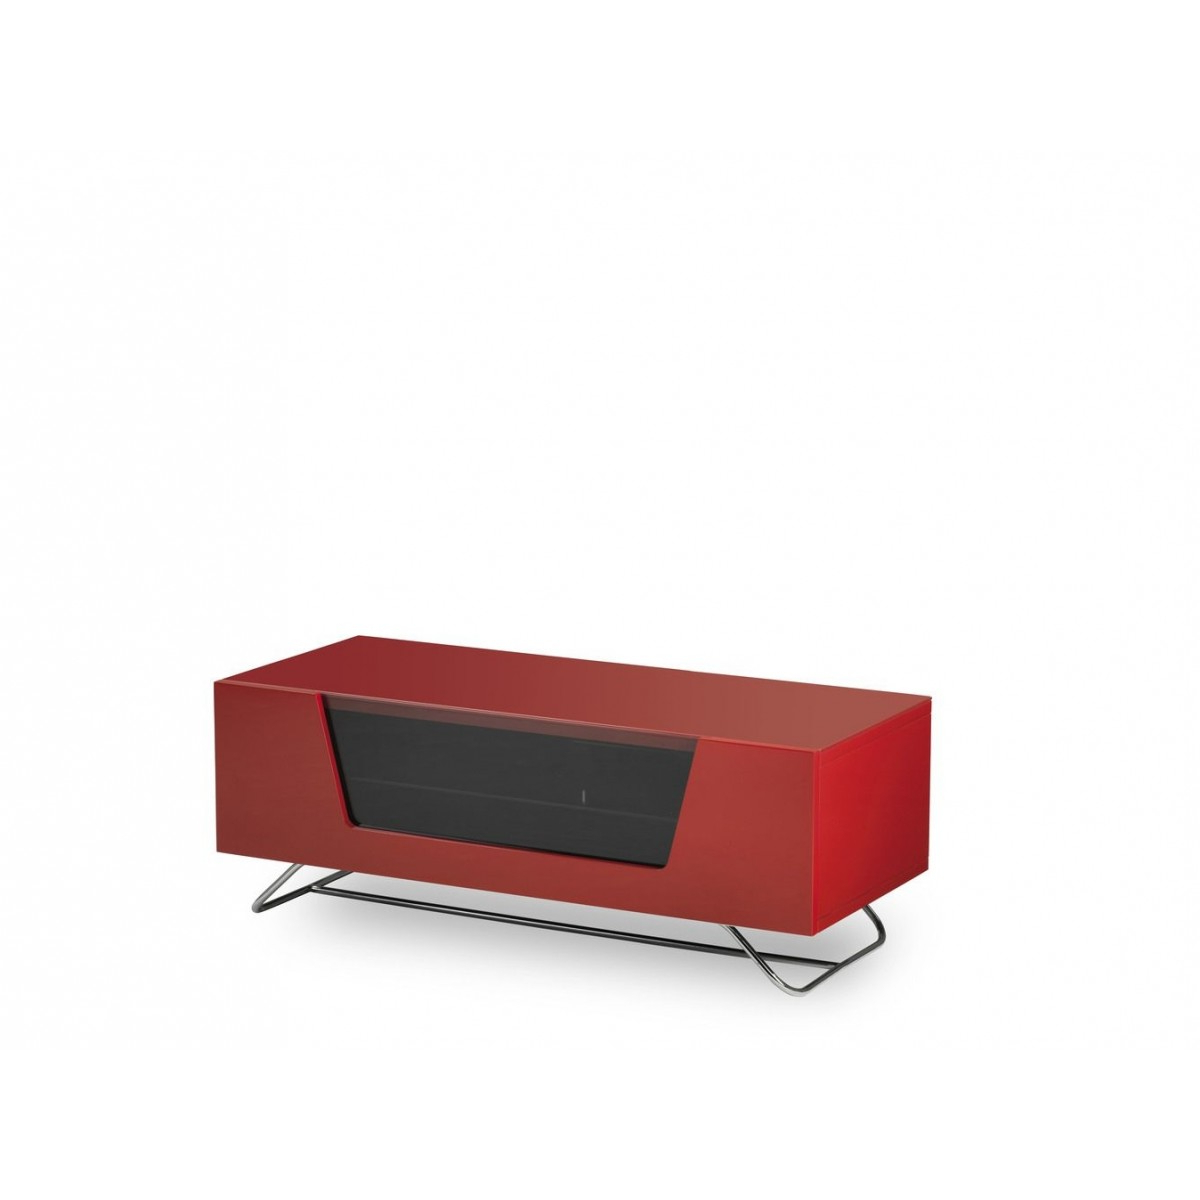 Alphason Chromium 2 Tv Stand Cro2 1000Cb Red Red Gloss Tv Cabinet Throughout Most Current Red Gloss Tv Stands (View 19 of 20)